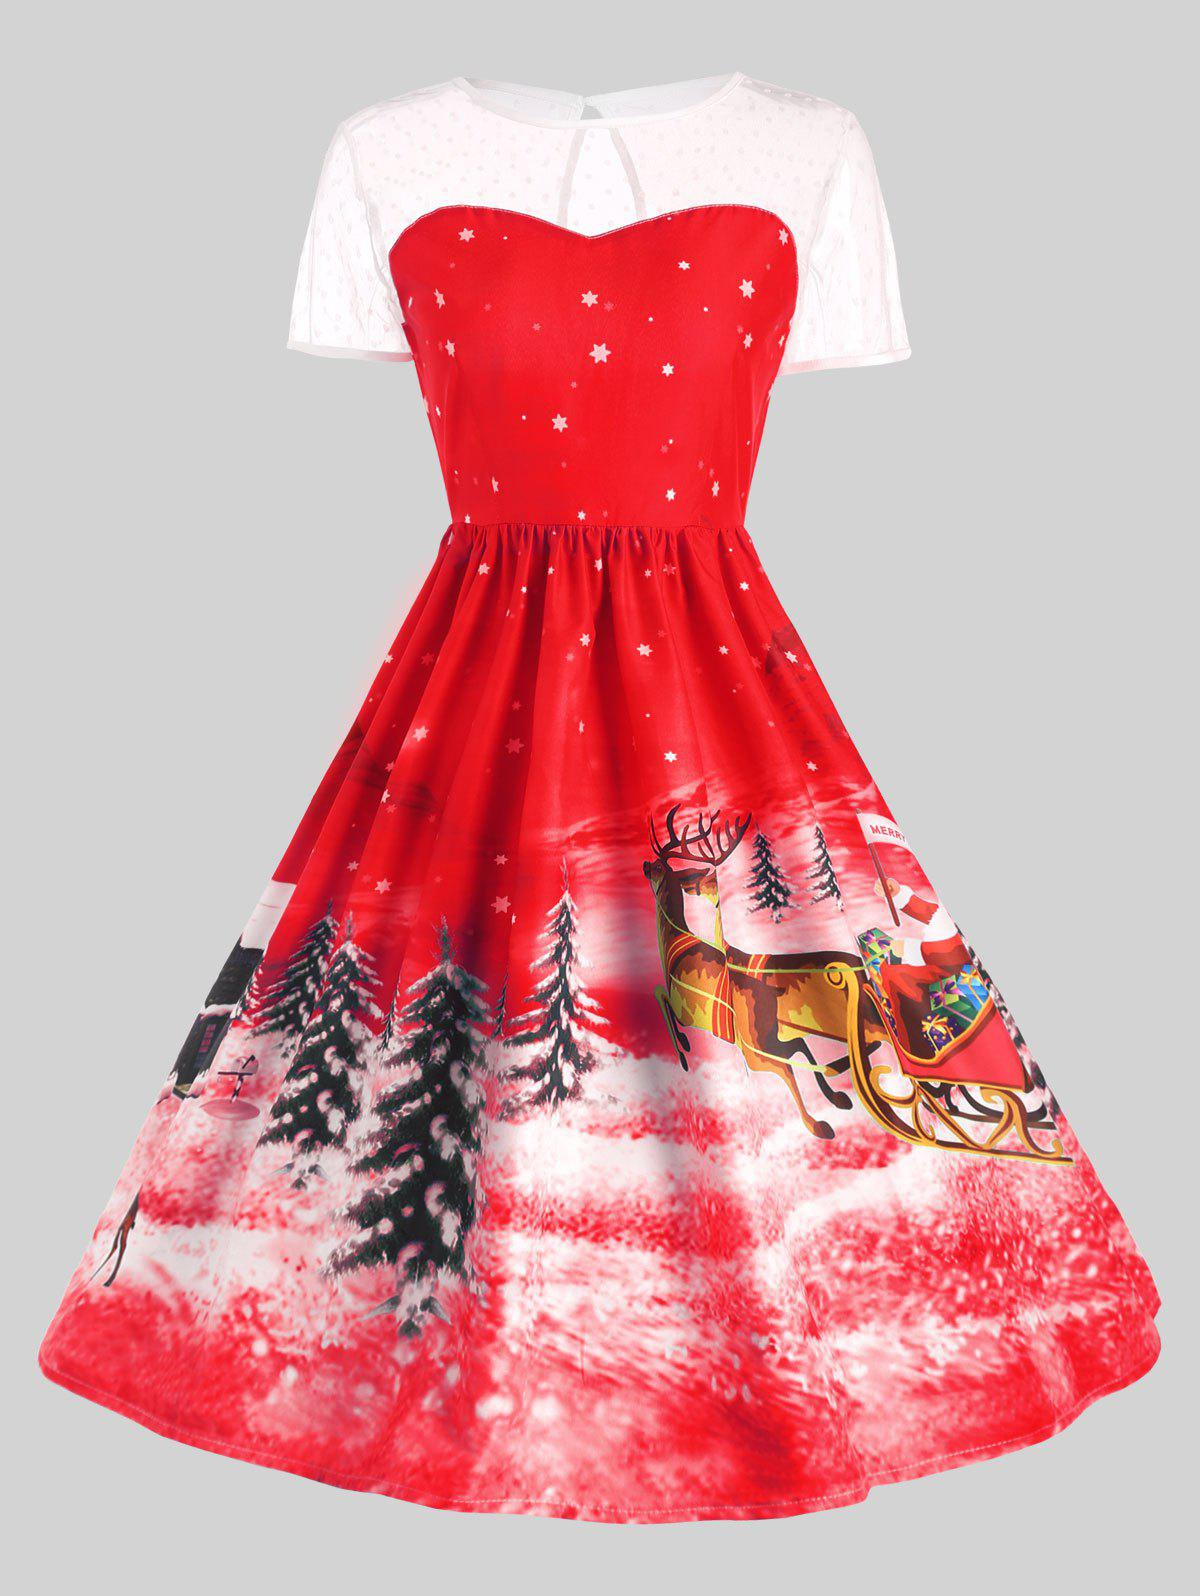 Father Christmas Sleigh Party Gown Dress